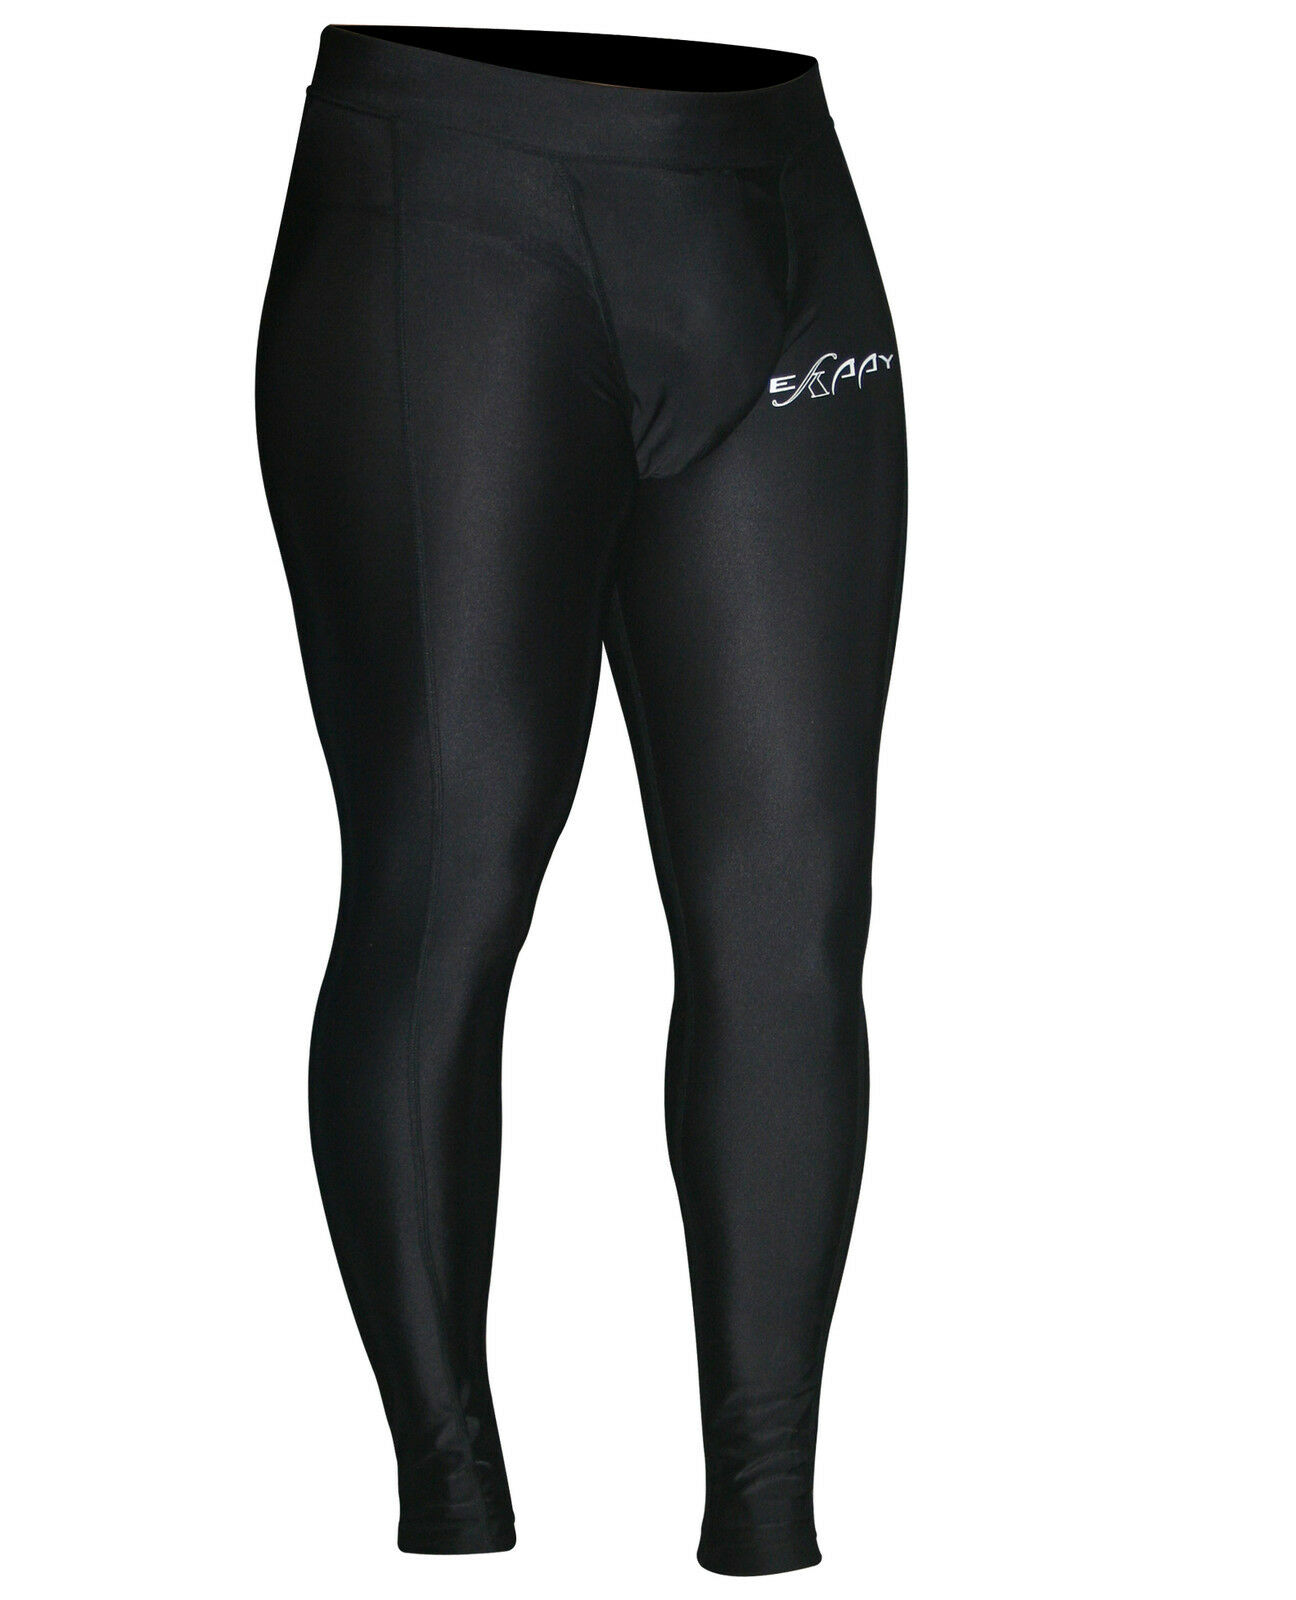 Mens Thermal Compression Pants Running Gym Workout